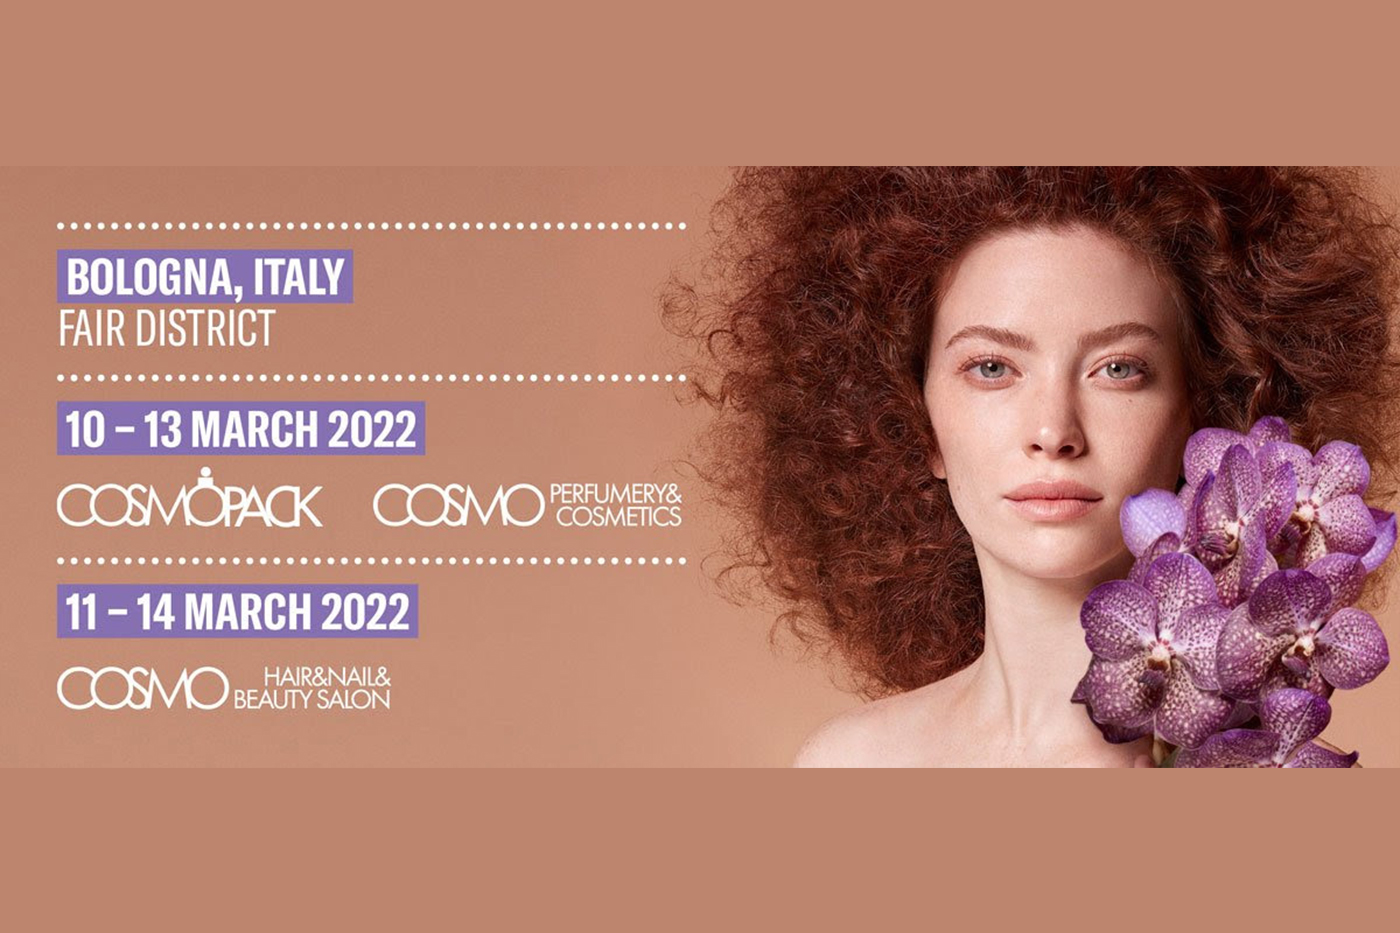 53rd edition of Cosmoprof Worldwide now postponed to March 2022